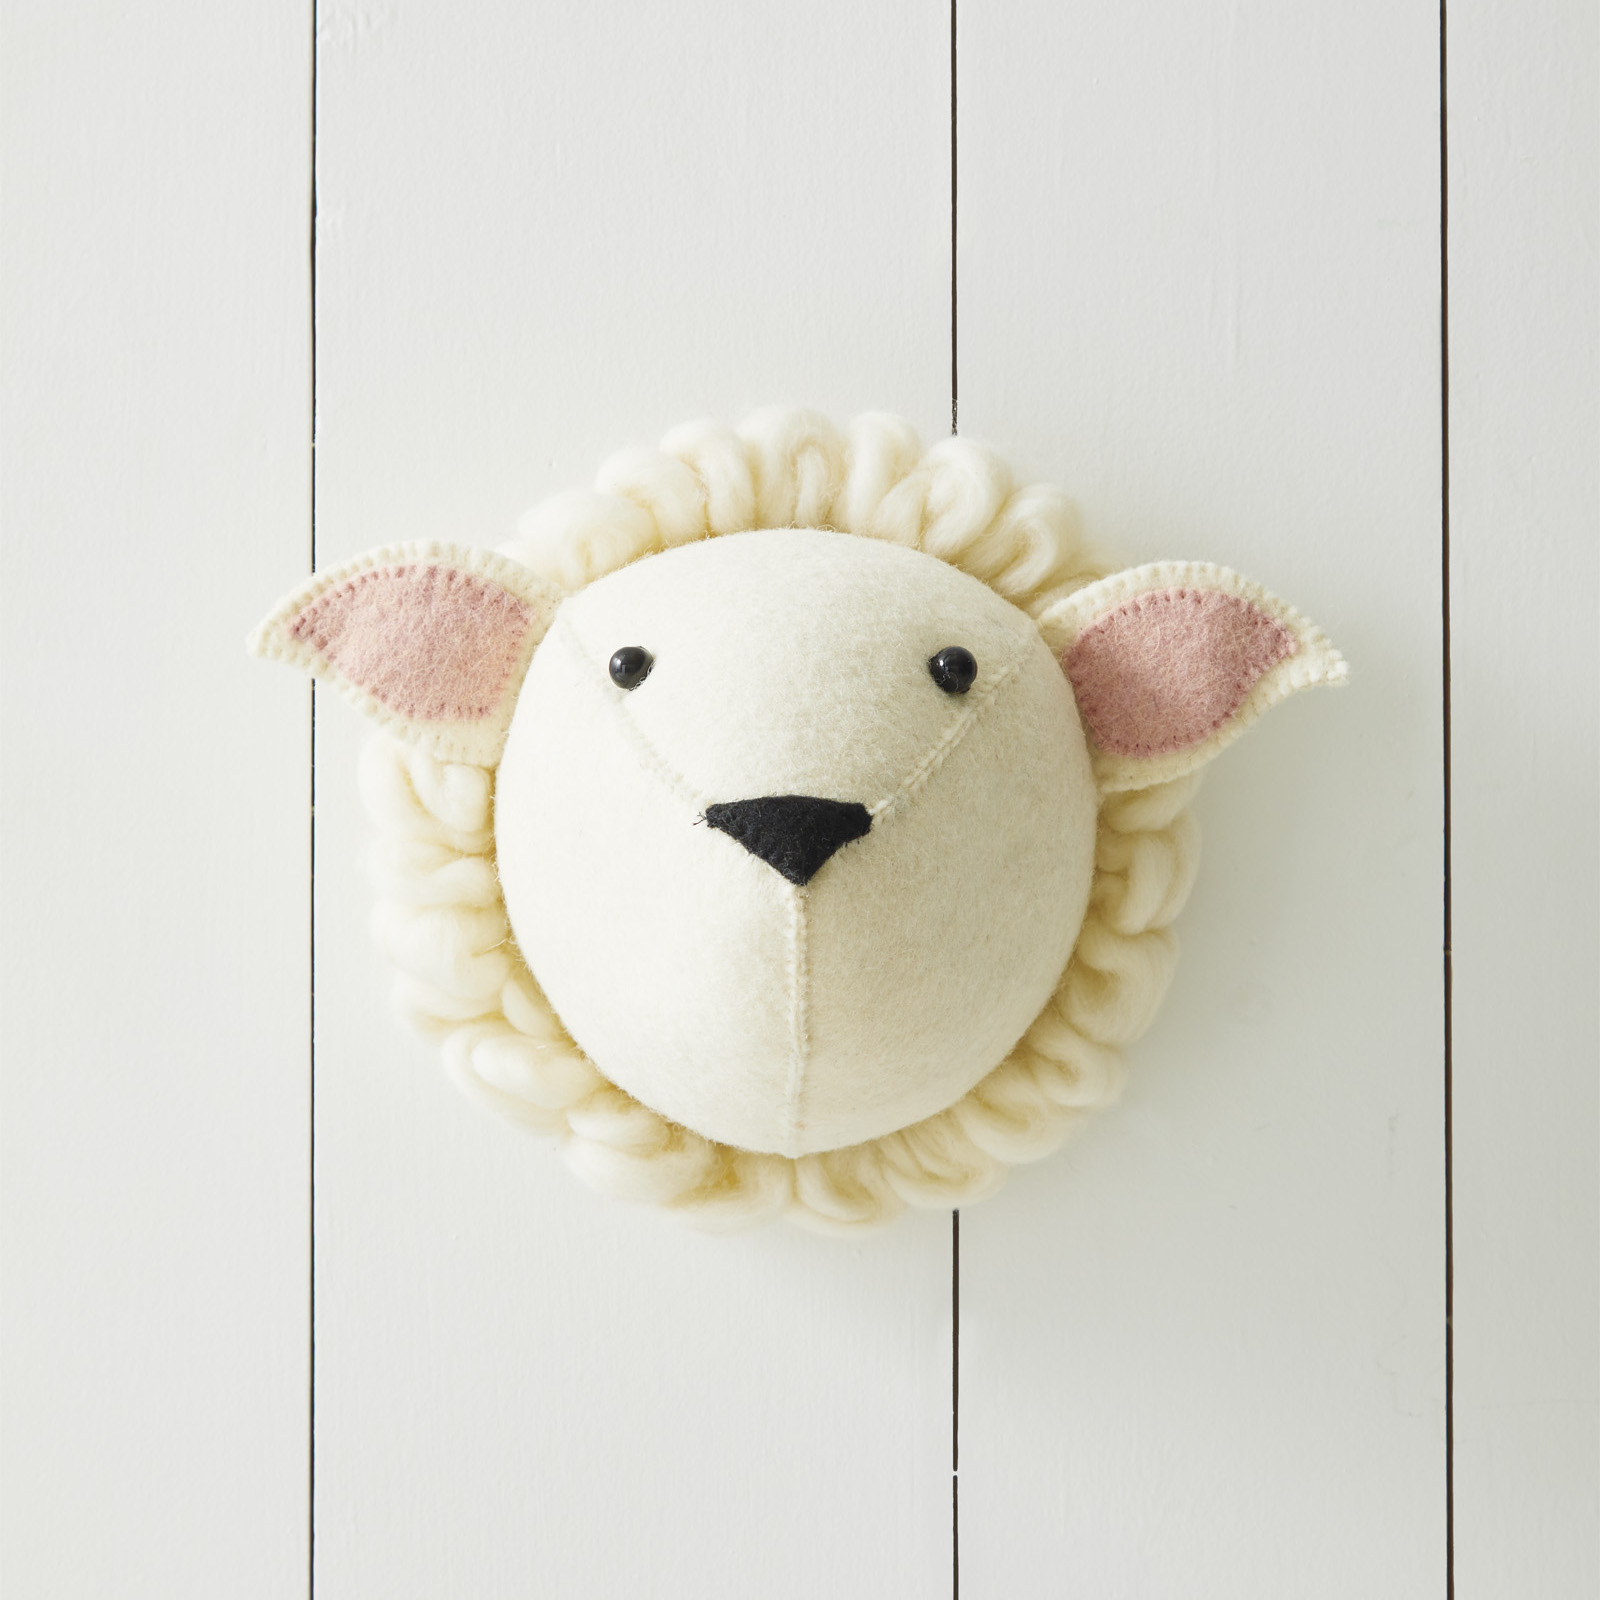 Nursery_Felt_Animal_Heads_Sheep_MV_0296_Crop_BASE.jpg